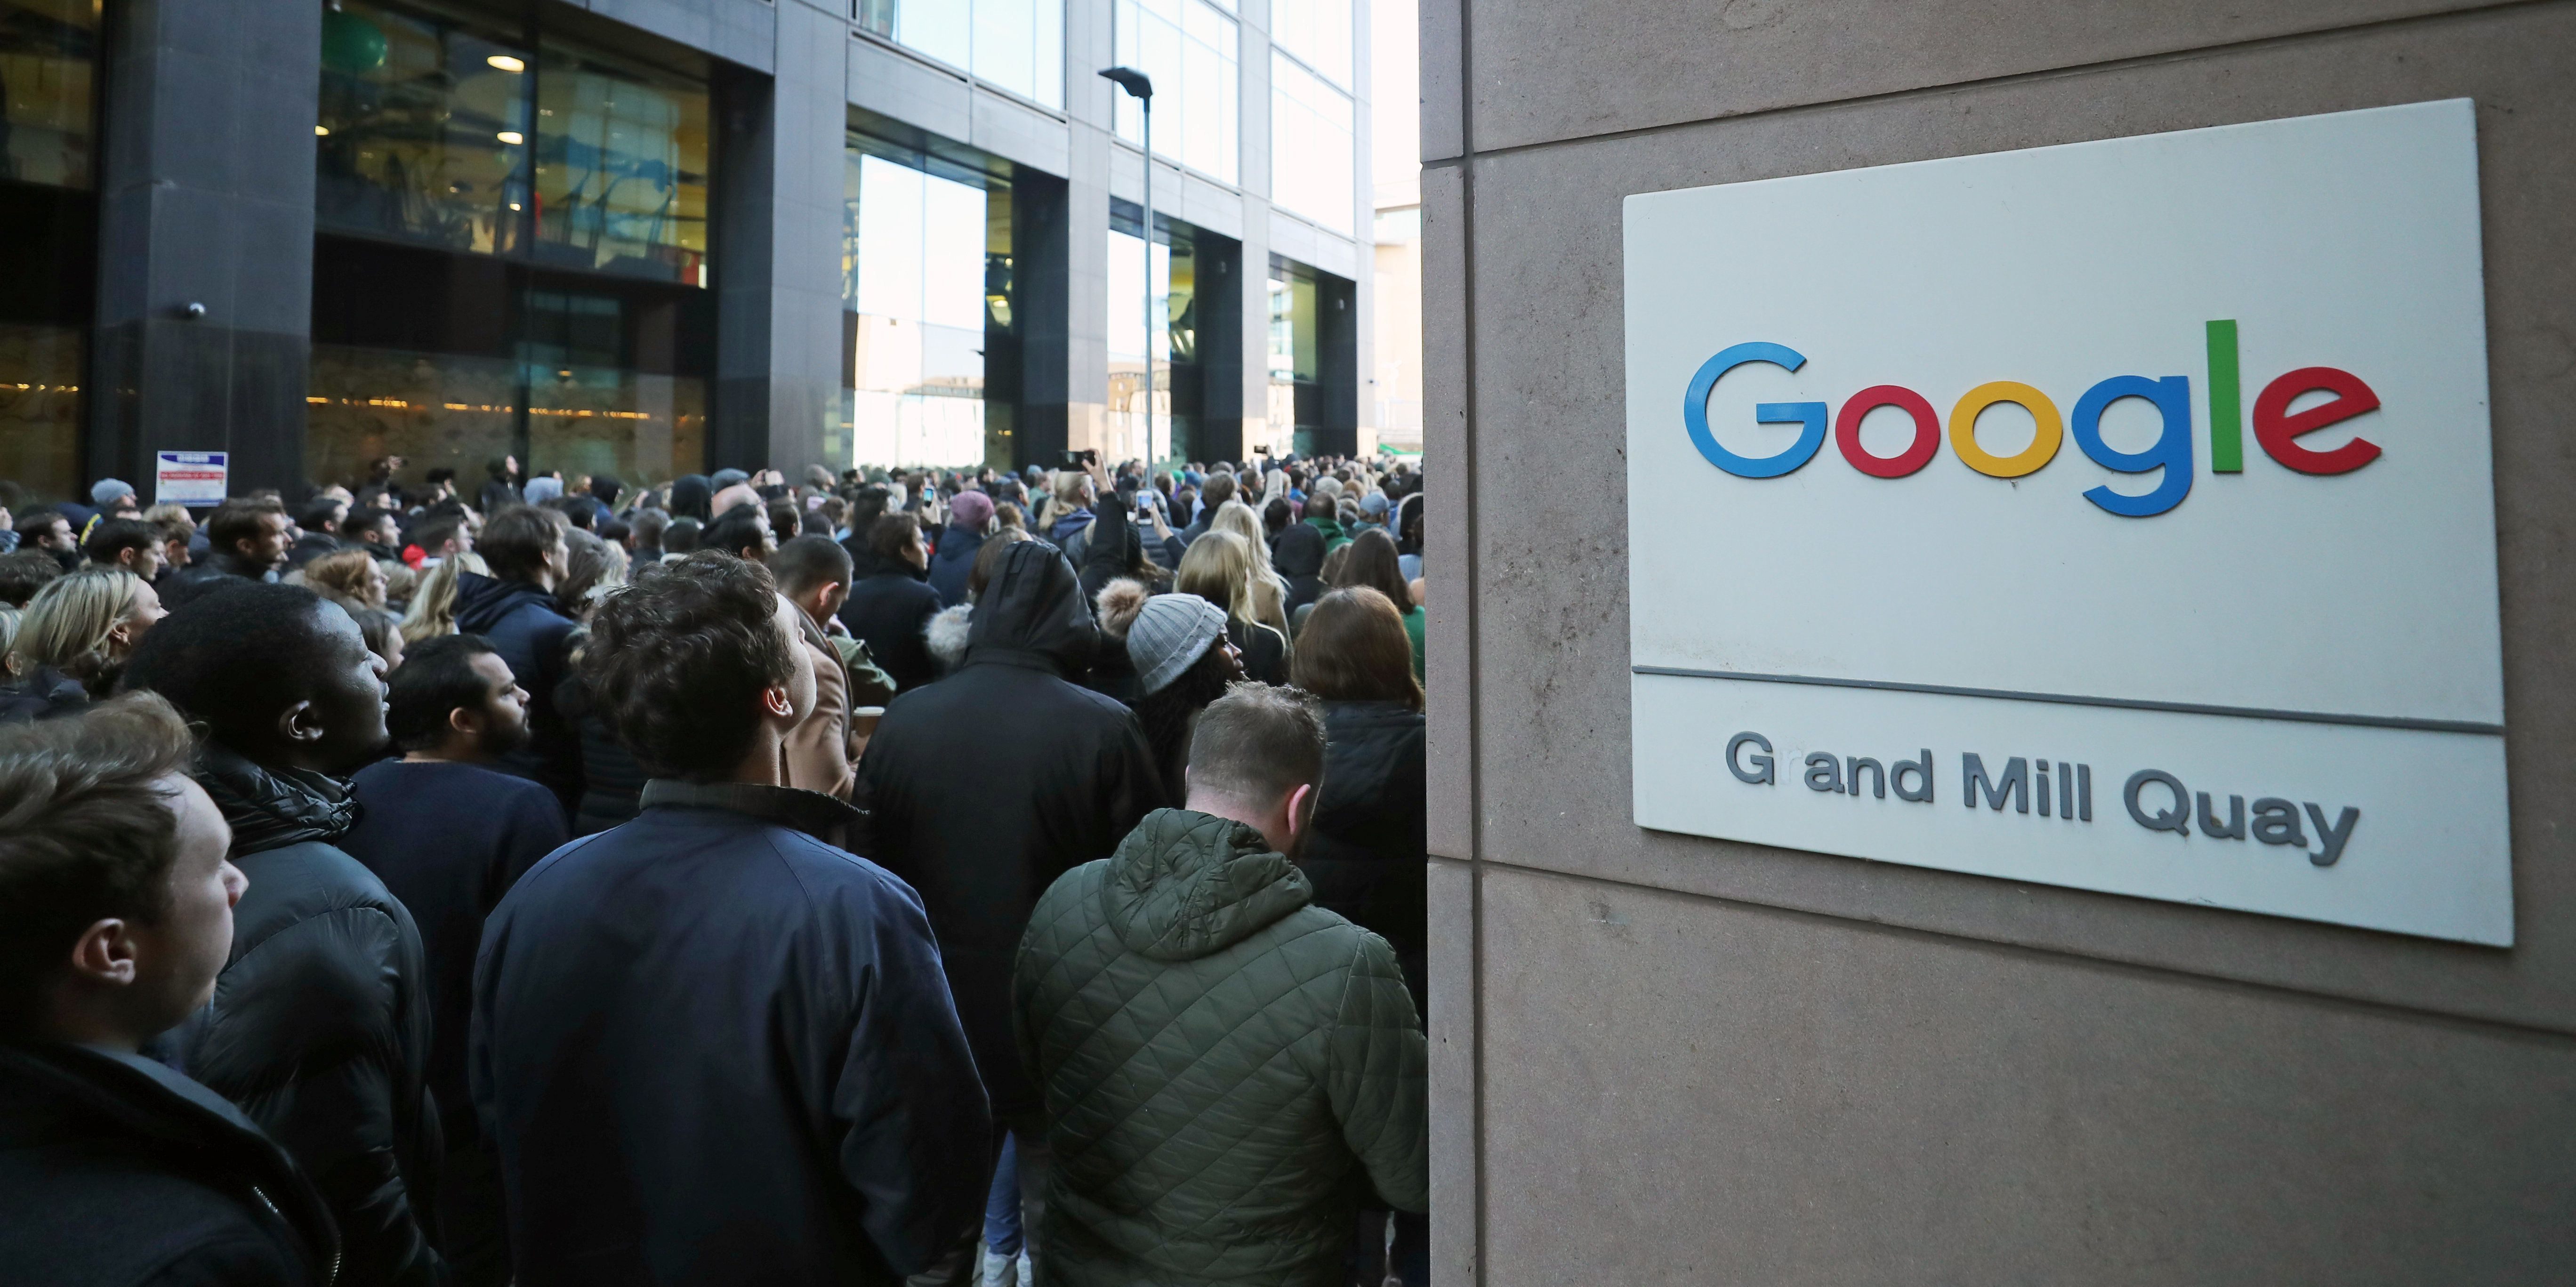 Google employees at its European headquarters in Dublin, Ireland, join others from around the world walking out of their offices in protest over claims of sexual harassment, gender inequality and systemic racism at the tech giant. (Photo by Niall Carson/PA Images via Getty Images)